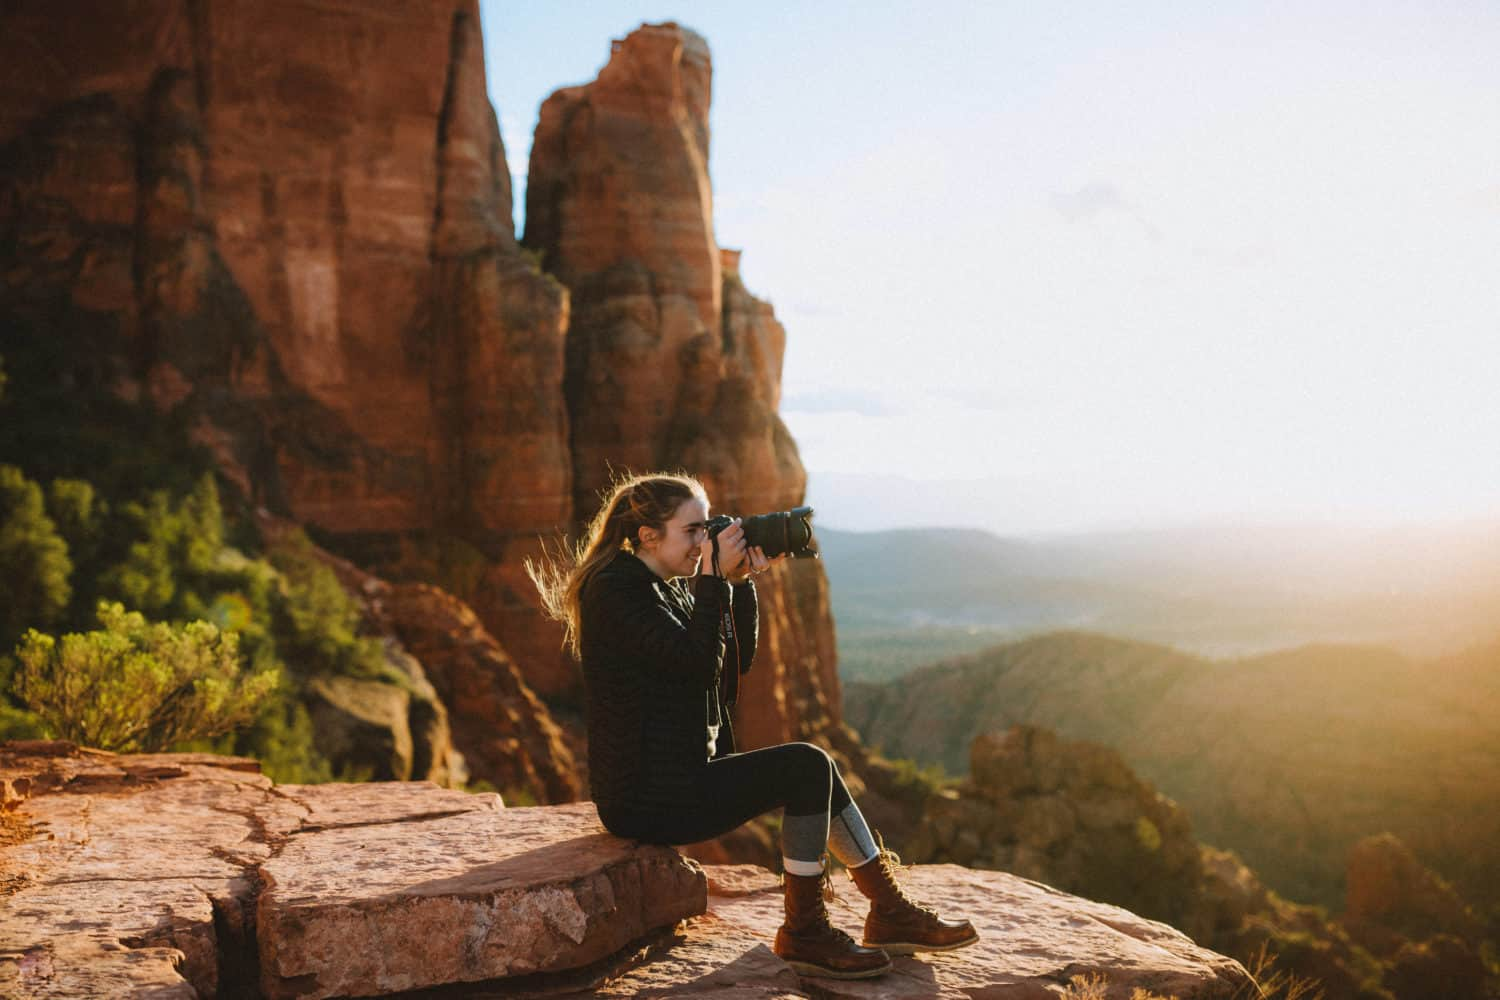 Emily Mandagie shooting with Canon EOS R In Sedona